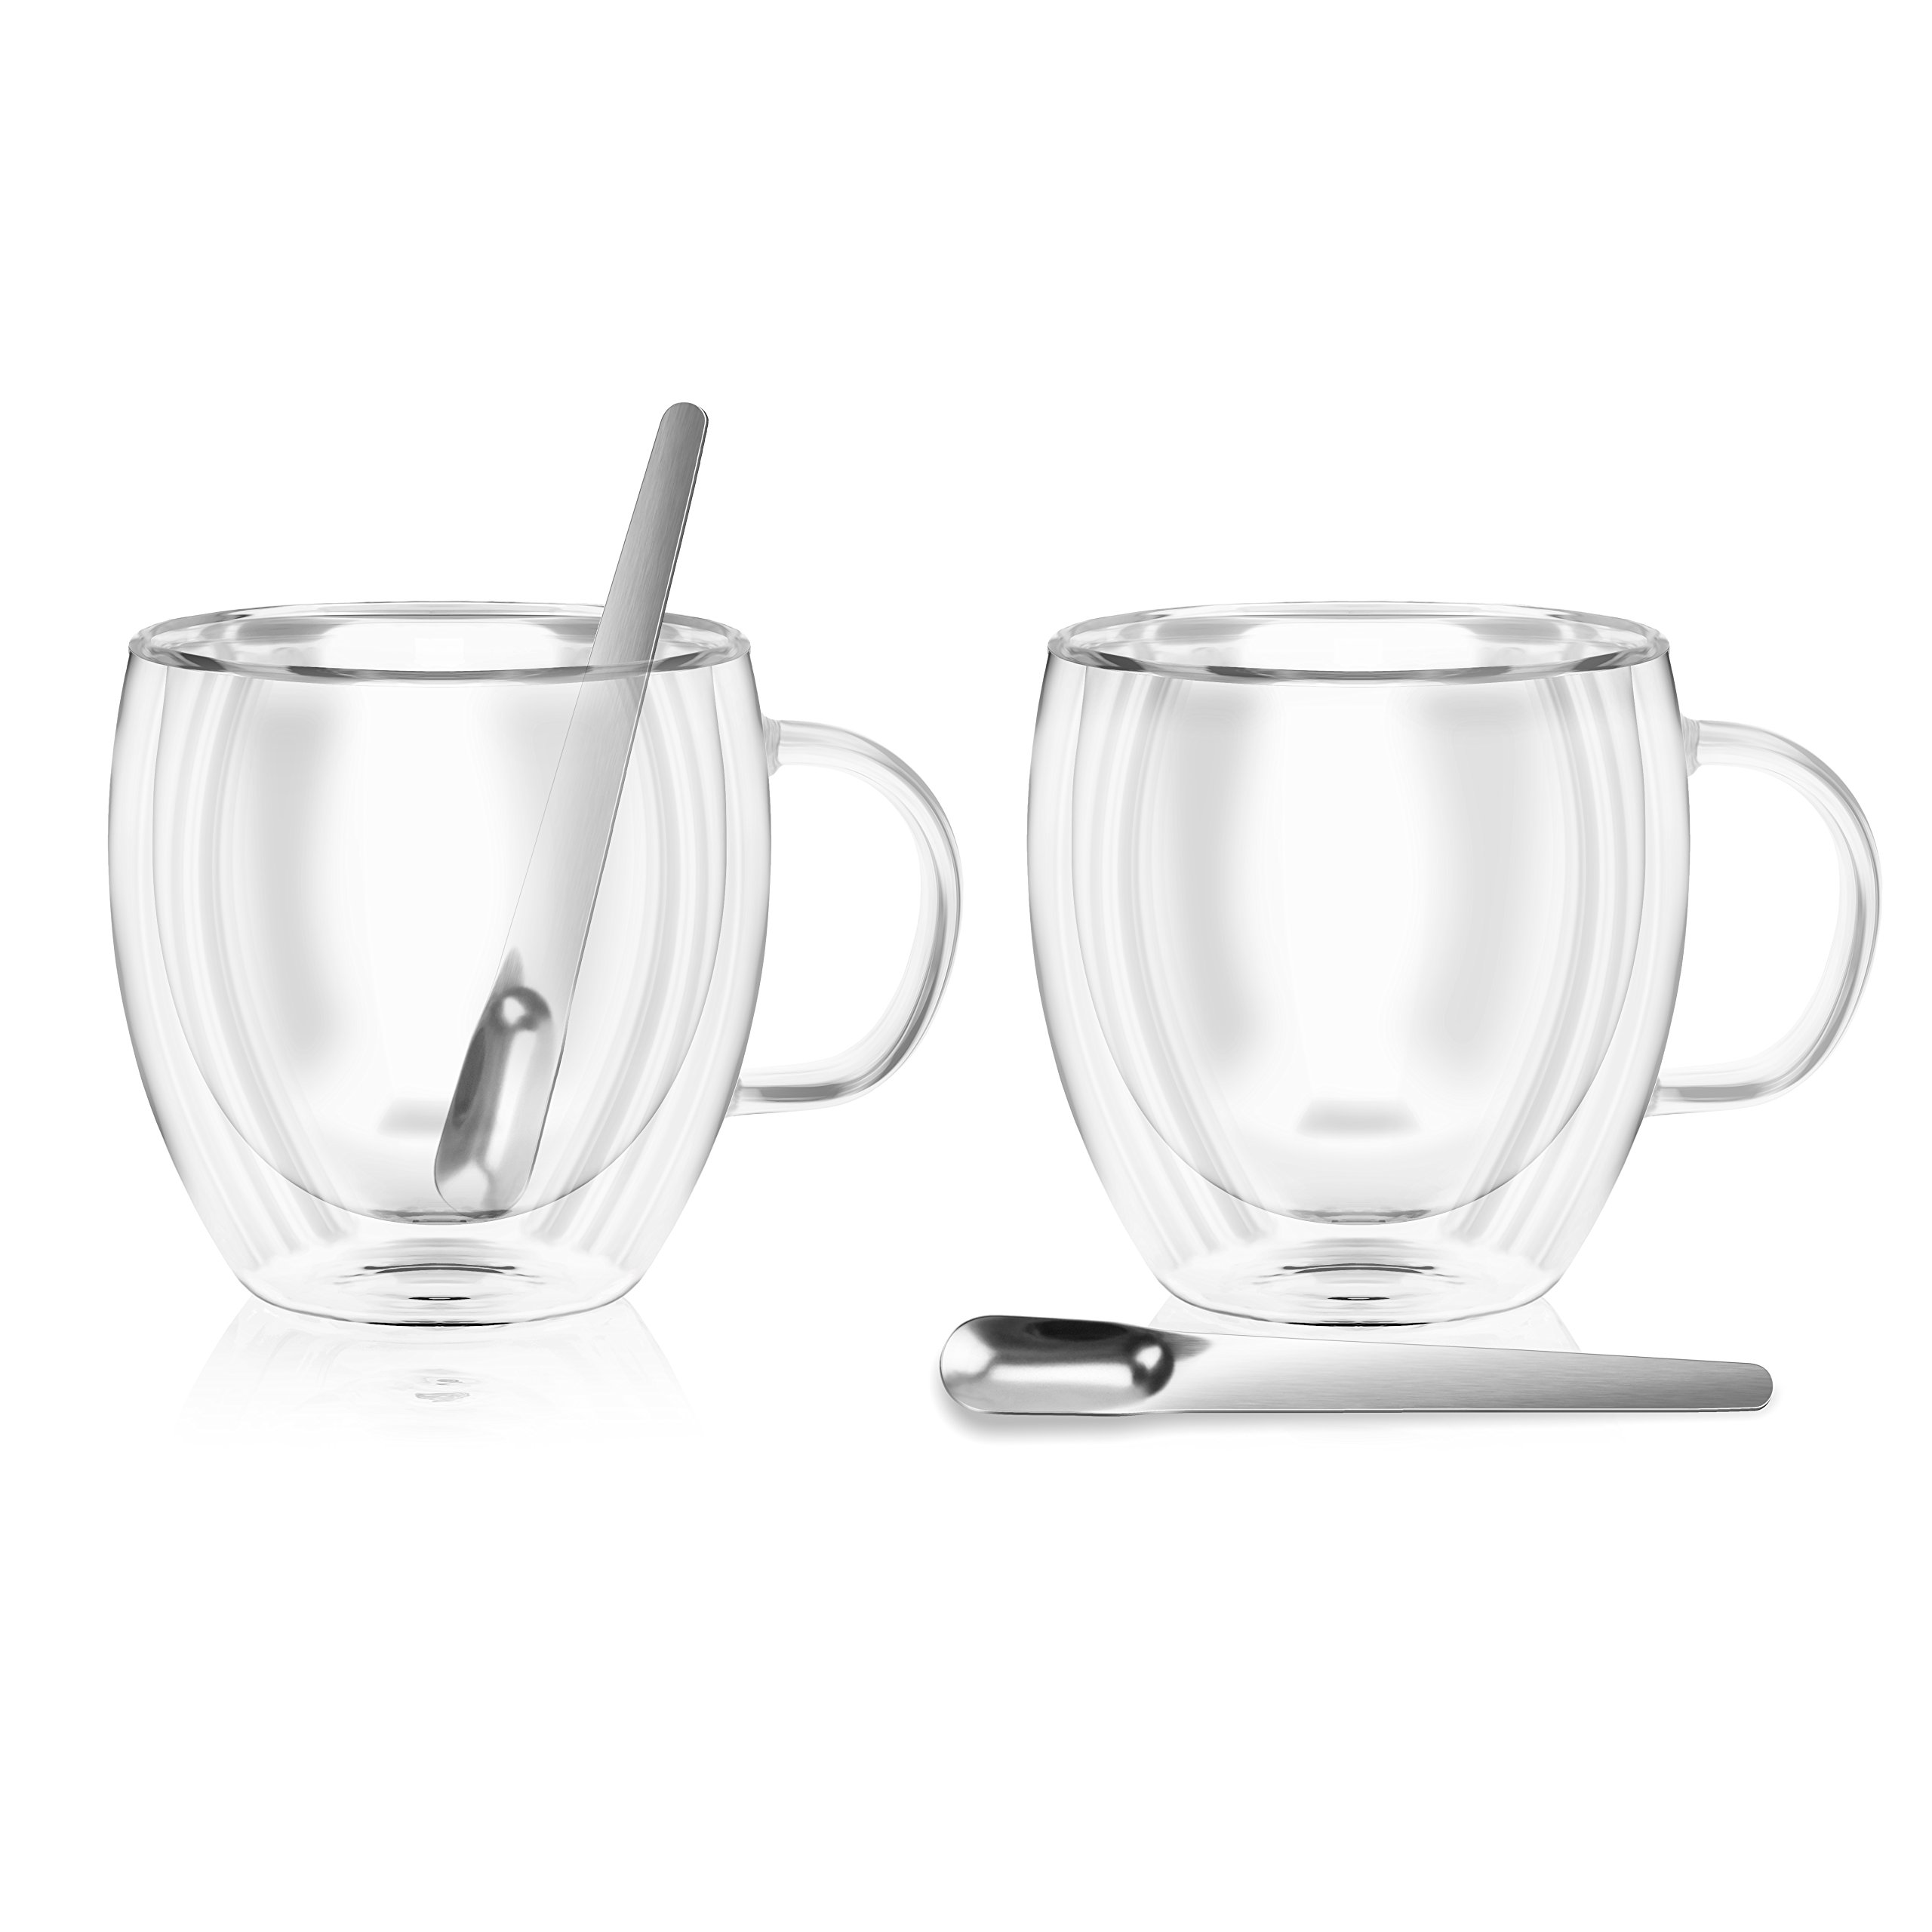 Double wall insulated glass Espresso mugs, 5.4 Ounces (set of 2 + 2 spoons)